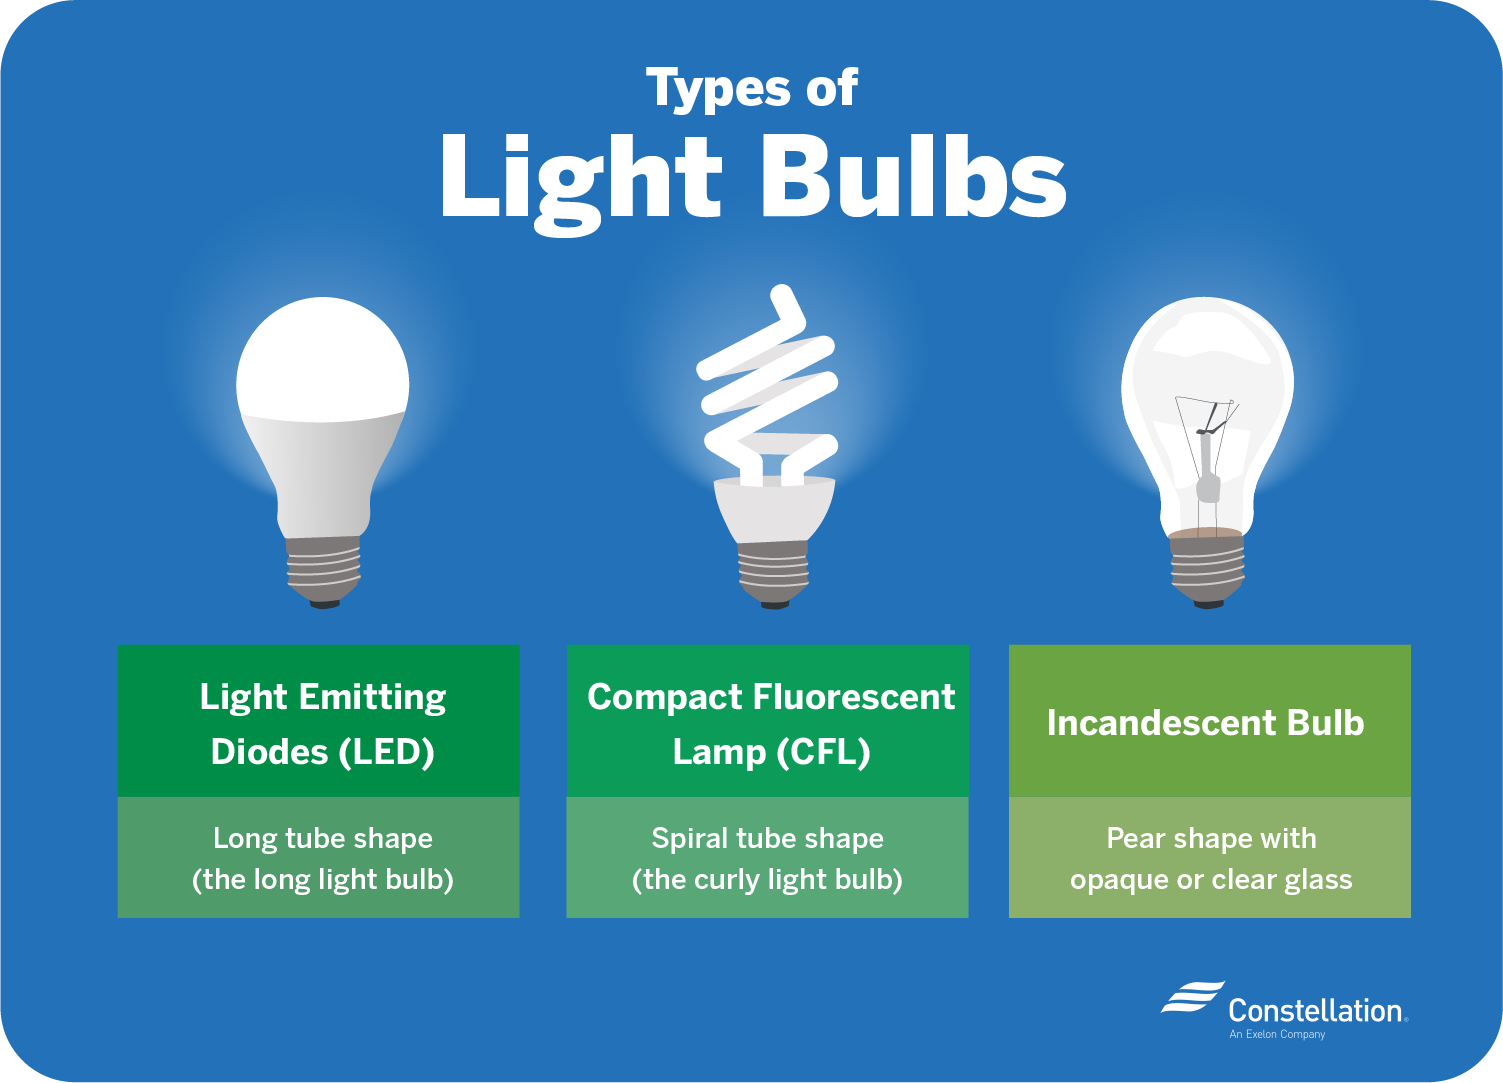 Types of lightbulbs: LED, CFL, Incandescent